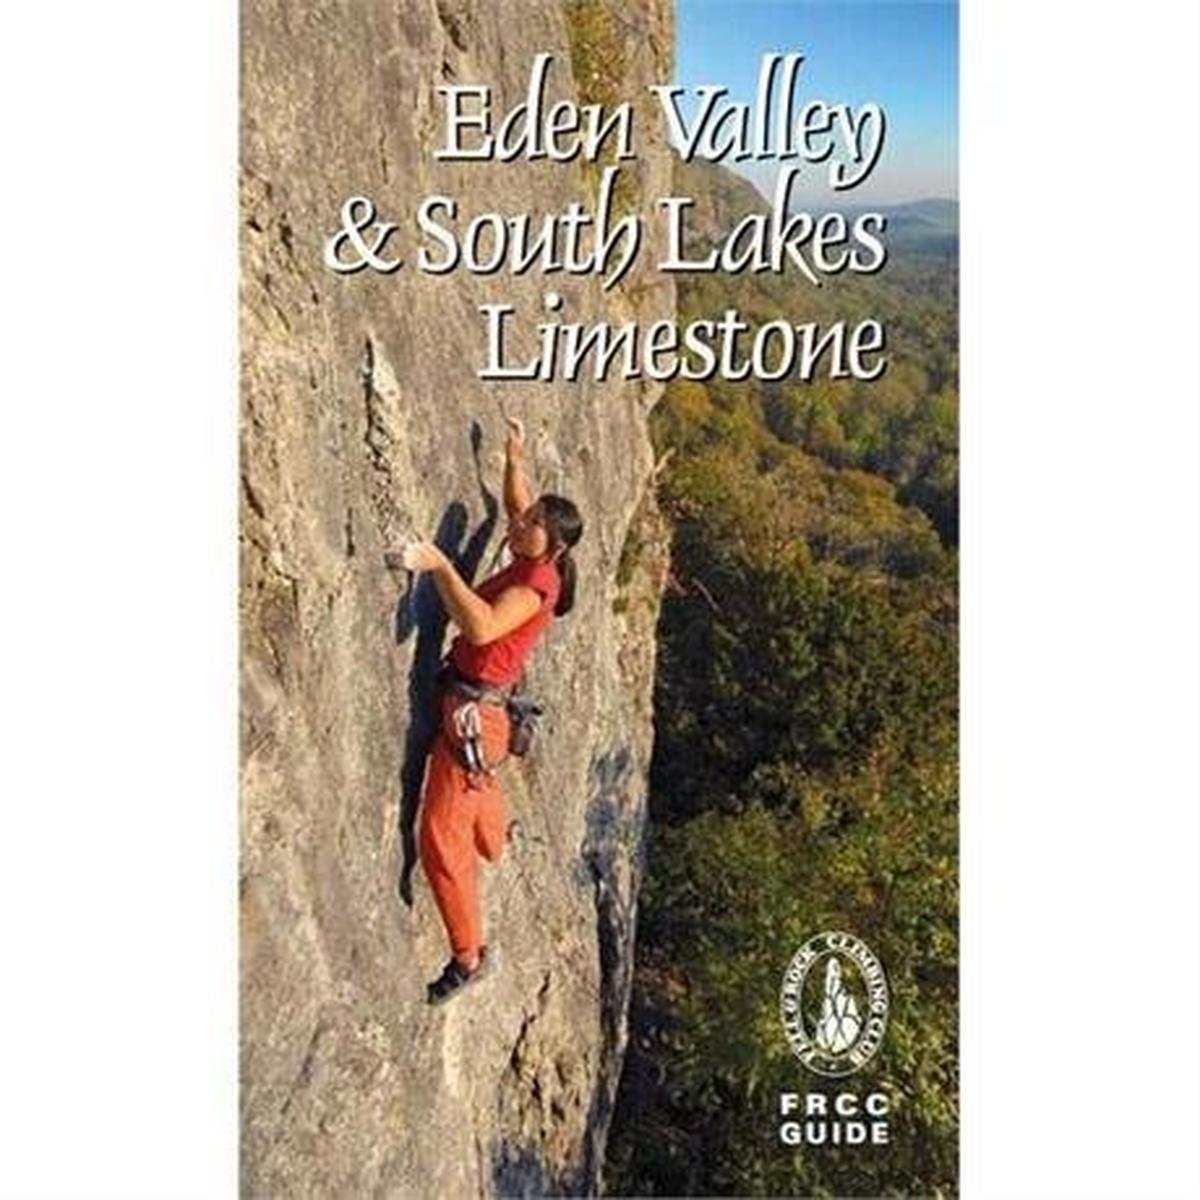 Frcc Guide Books FRCC Climbing Guide Book: Eden Valley & South Lakes Limestone